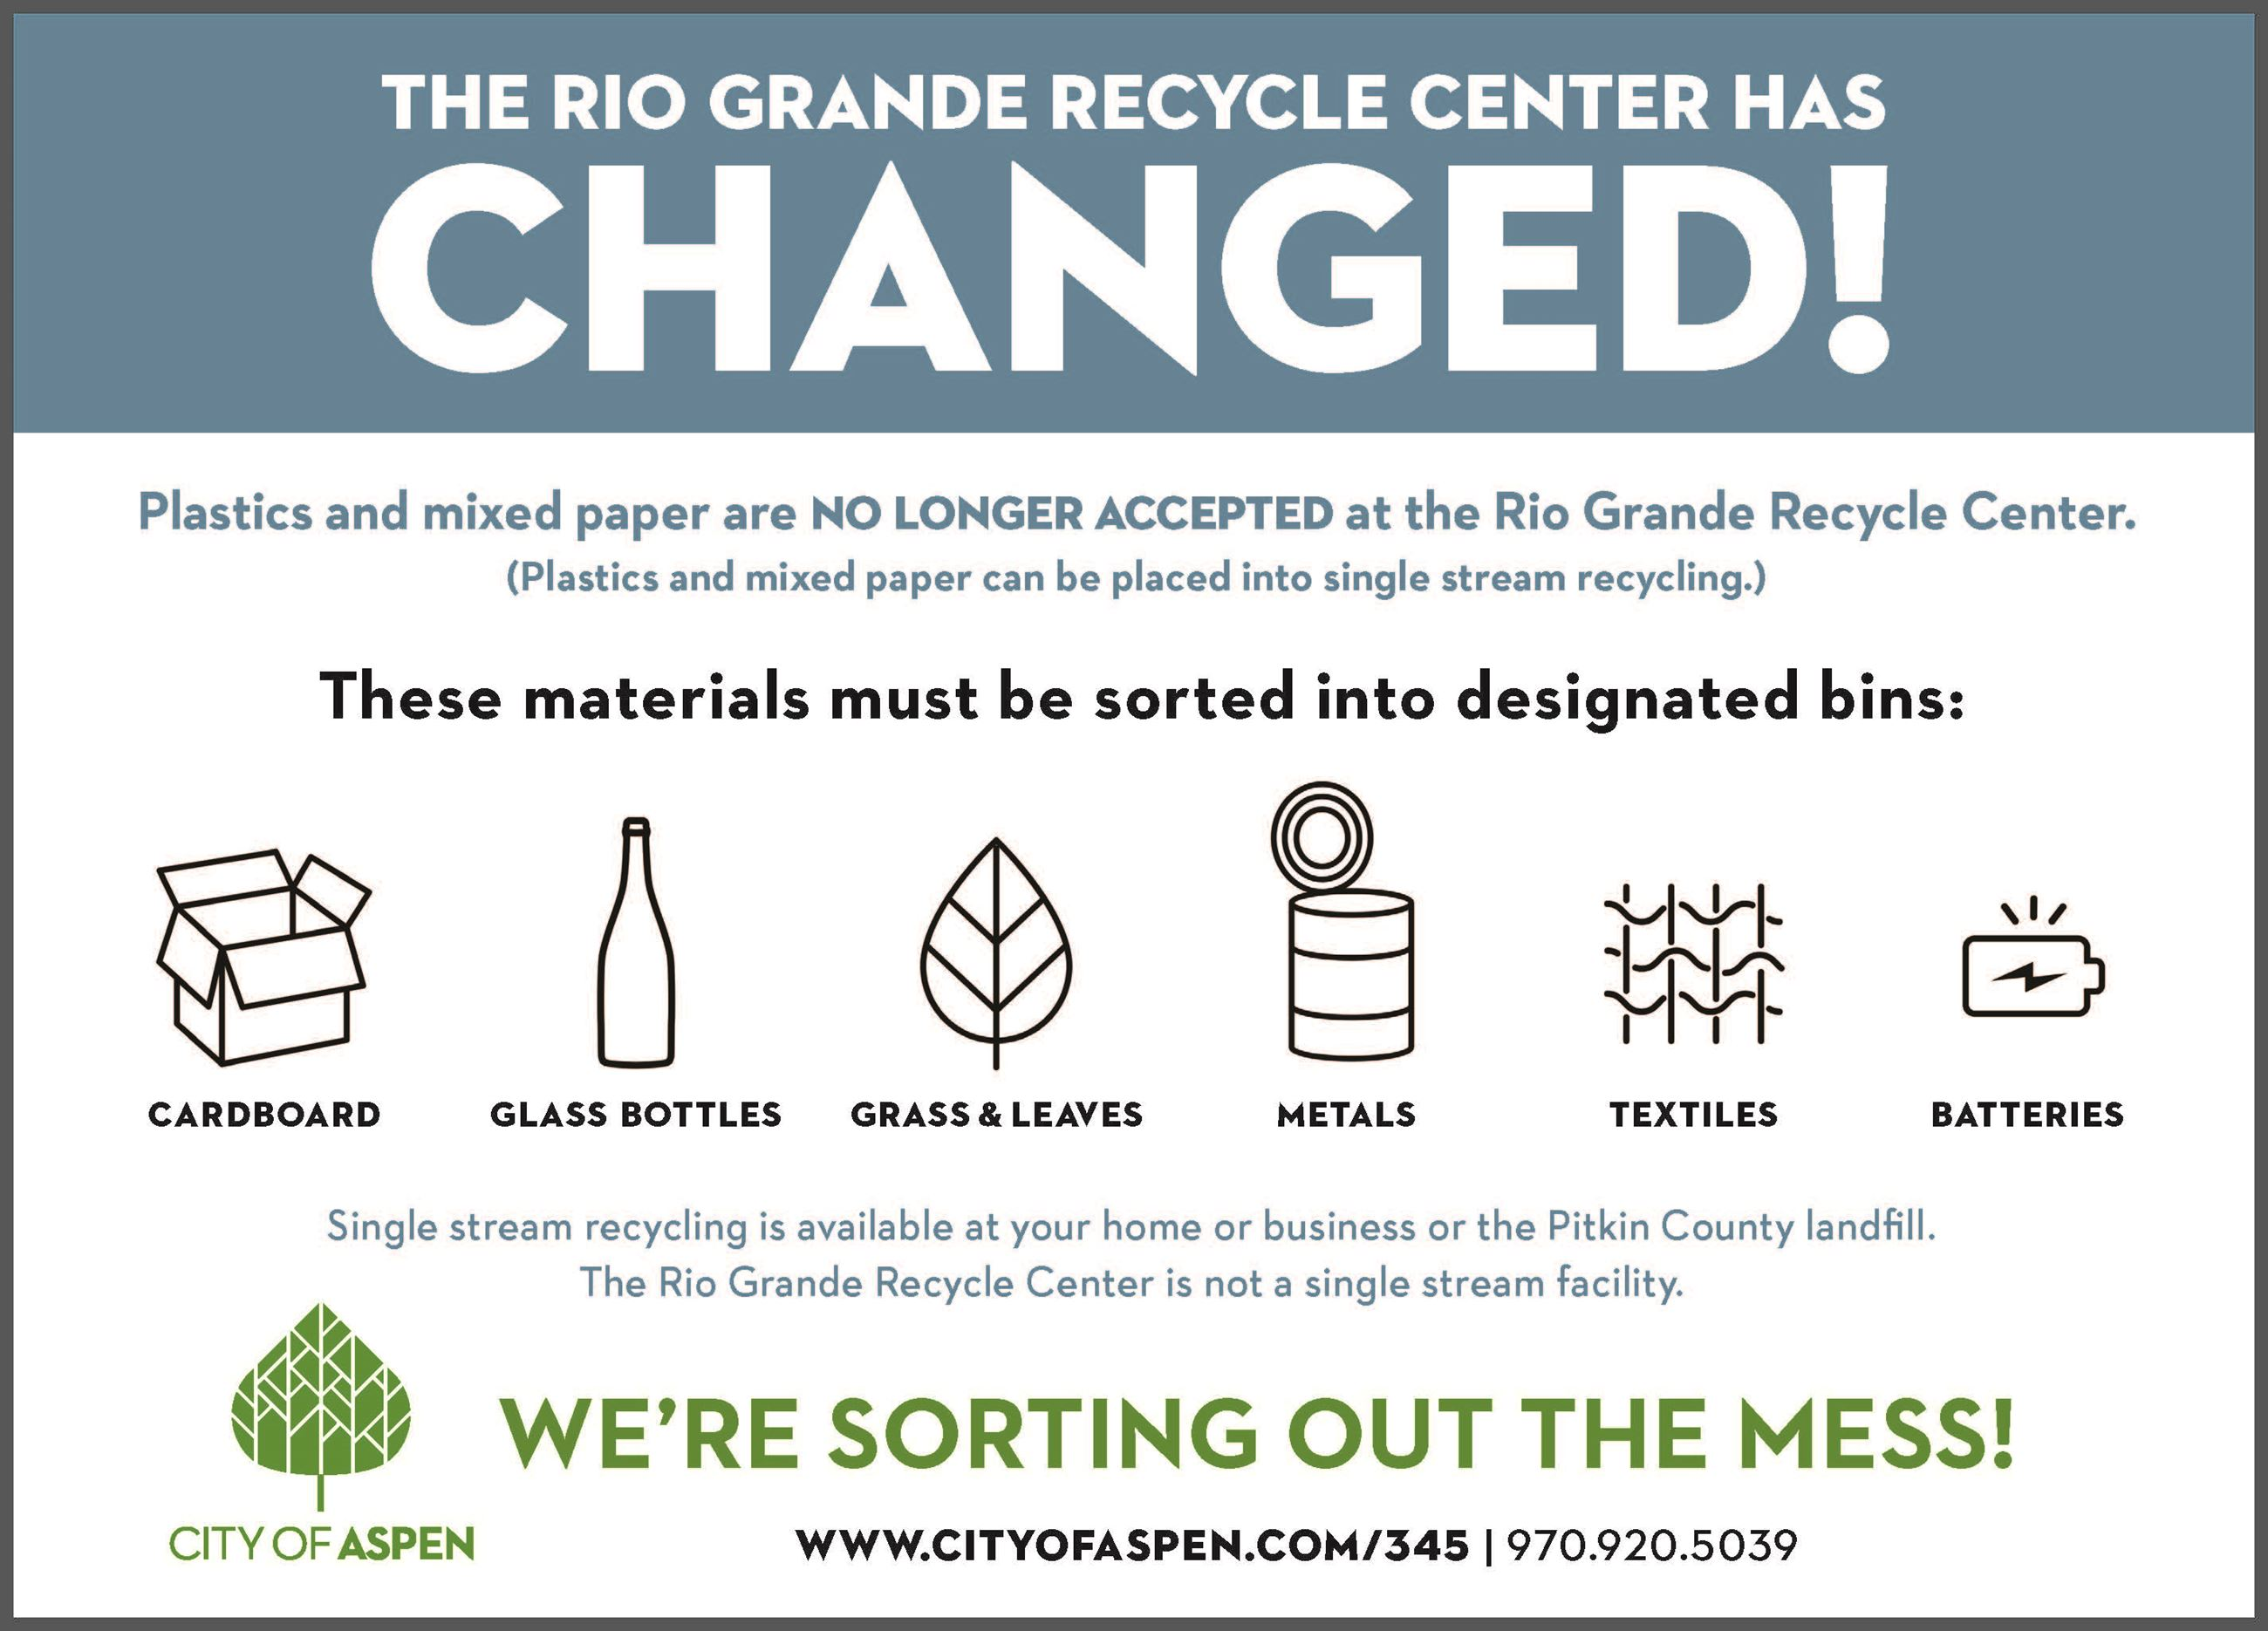 Rio Grande Recycle Center changed